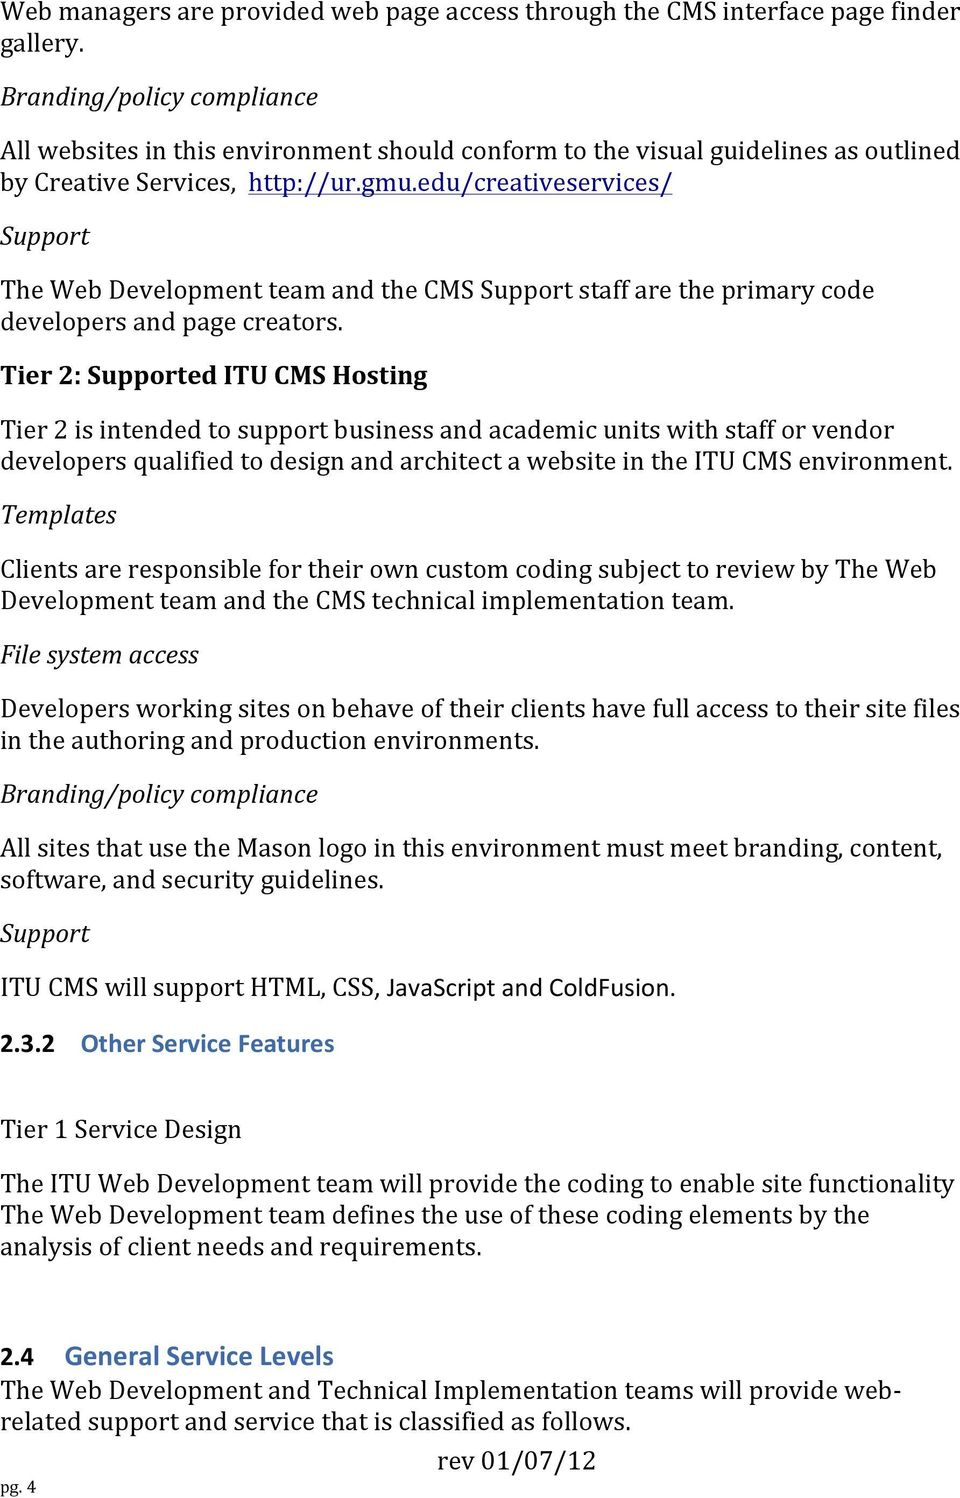 edu/creativeservices/ Support The Web Development team and the CMS Support staff are the primary code developers and page creators.